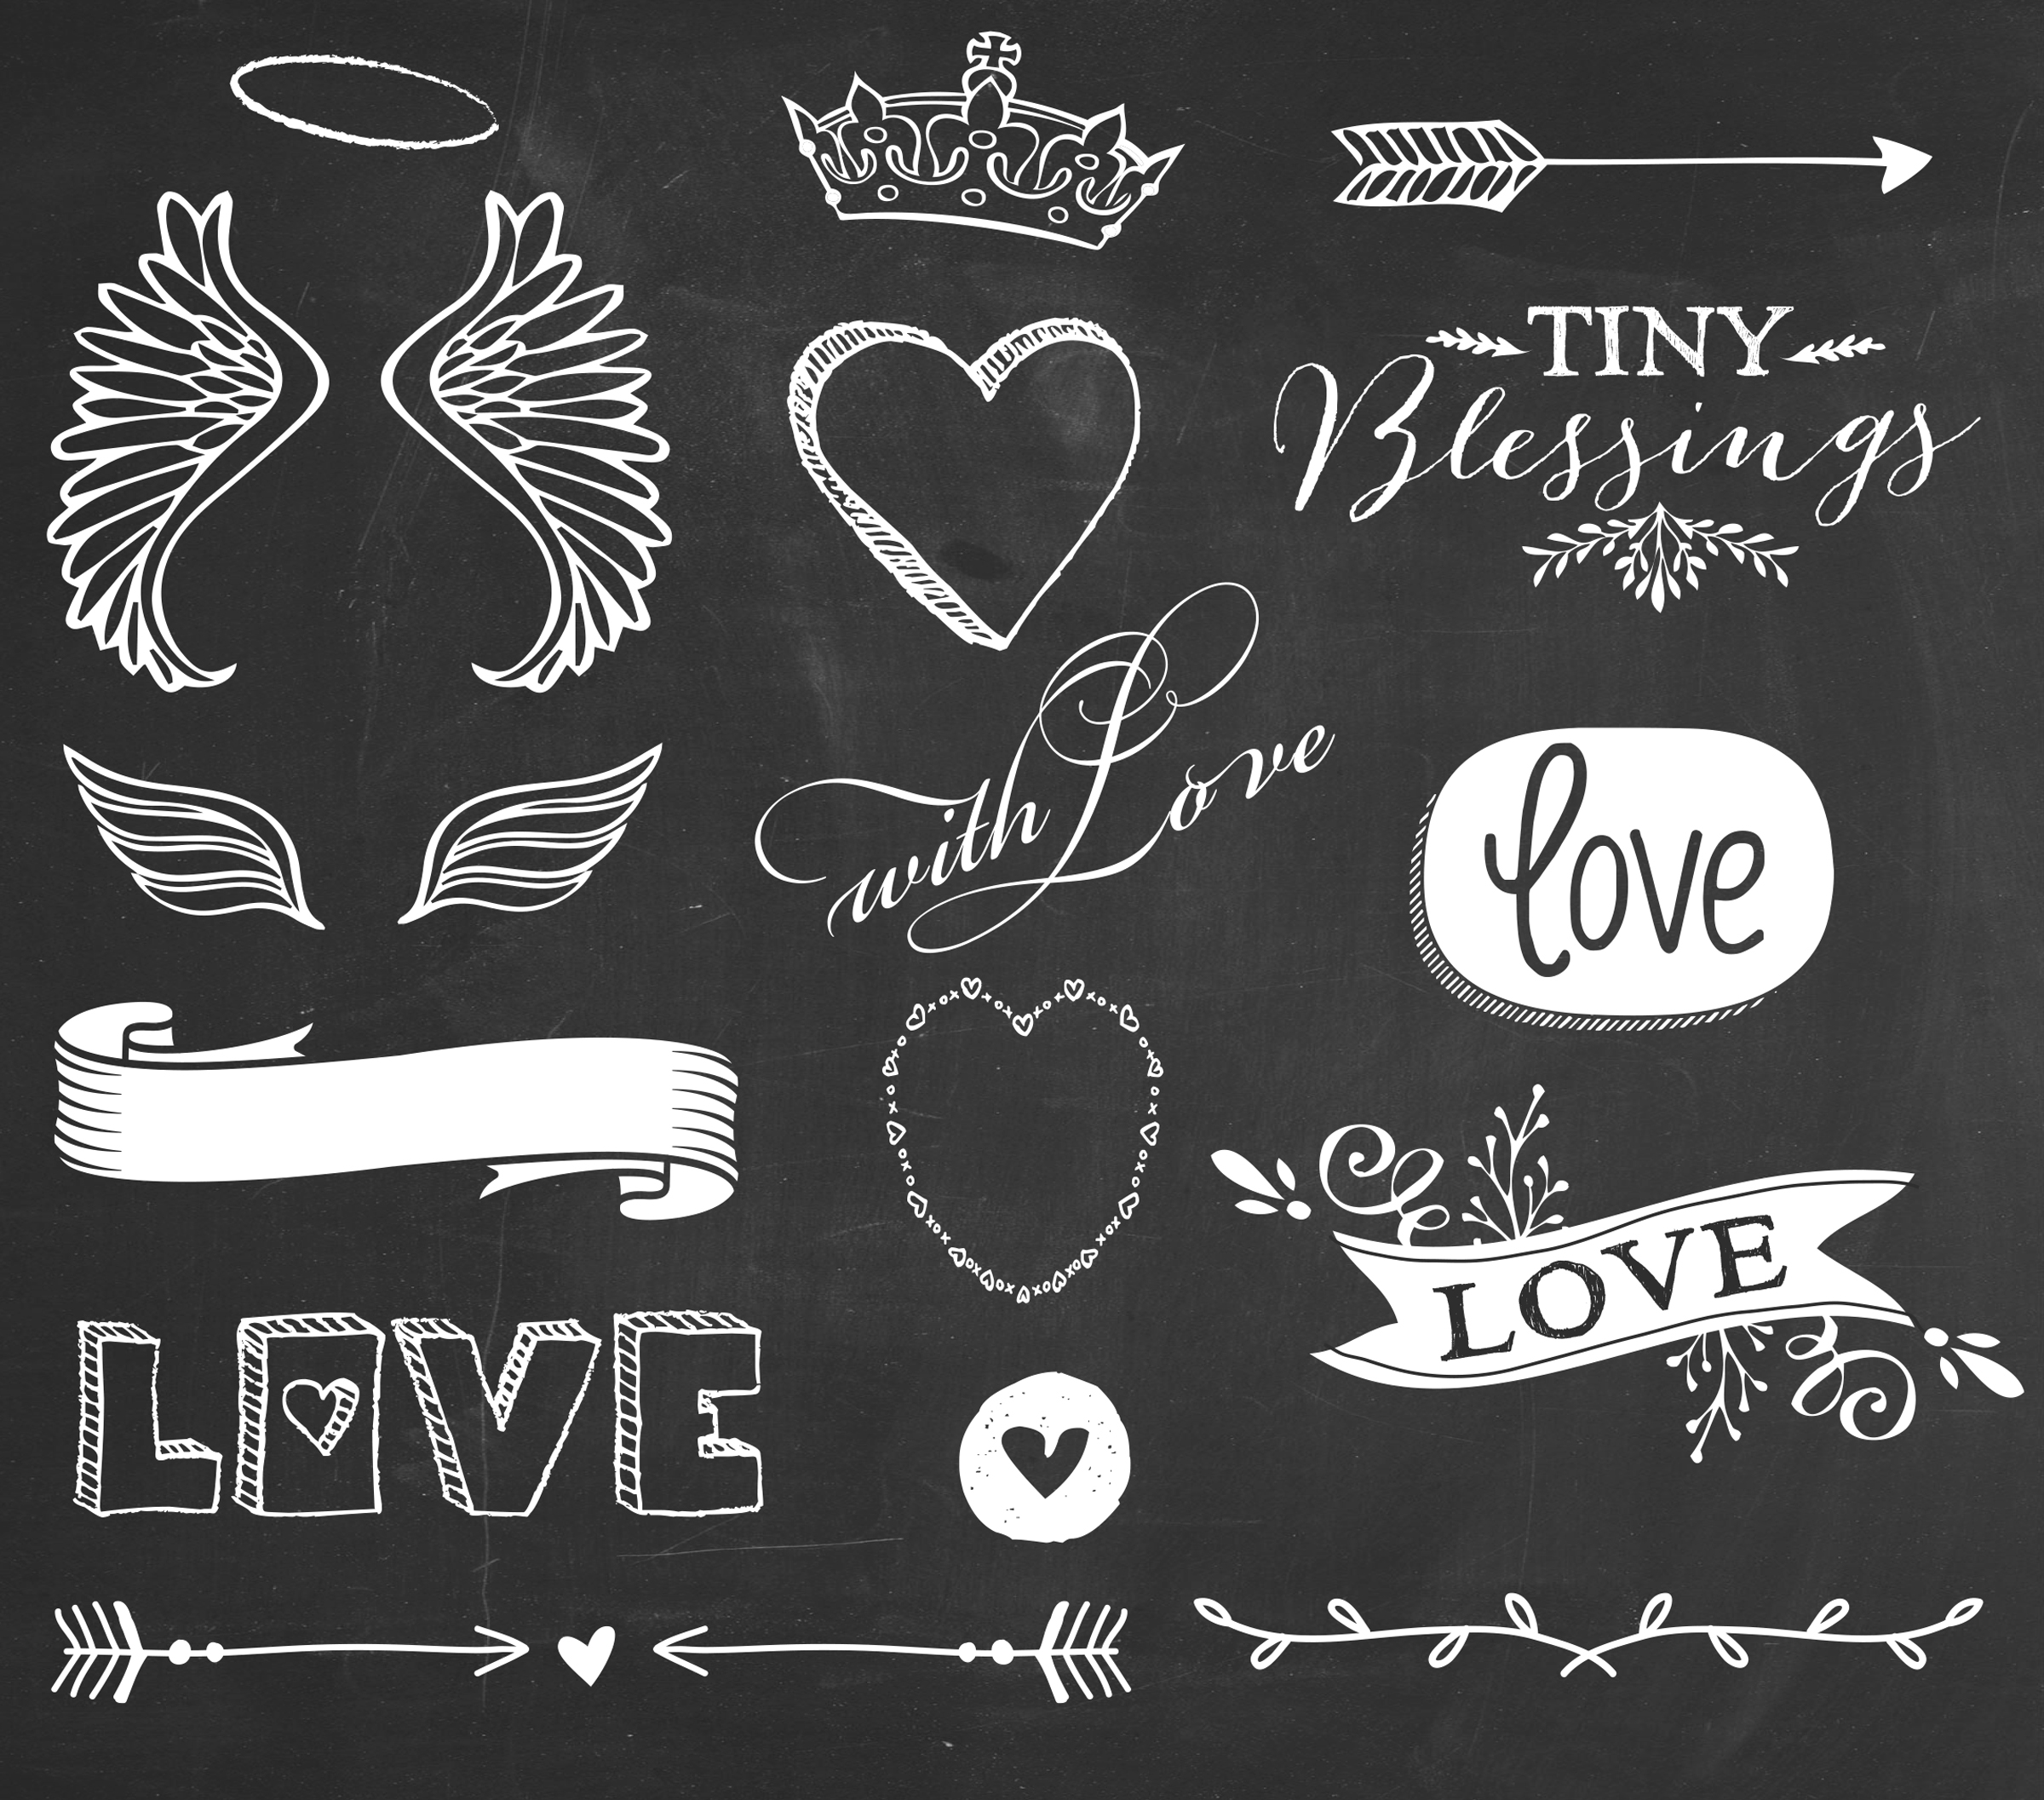 12 For Wings Of Love Chalkboard Overlays BONUS Frames Design Elements Set